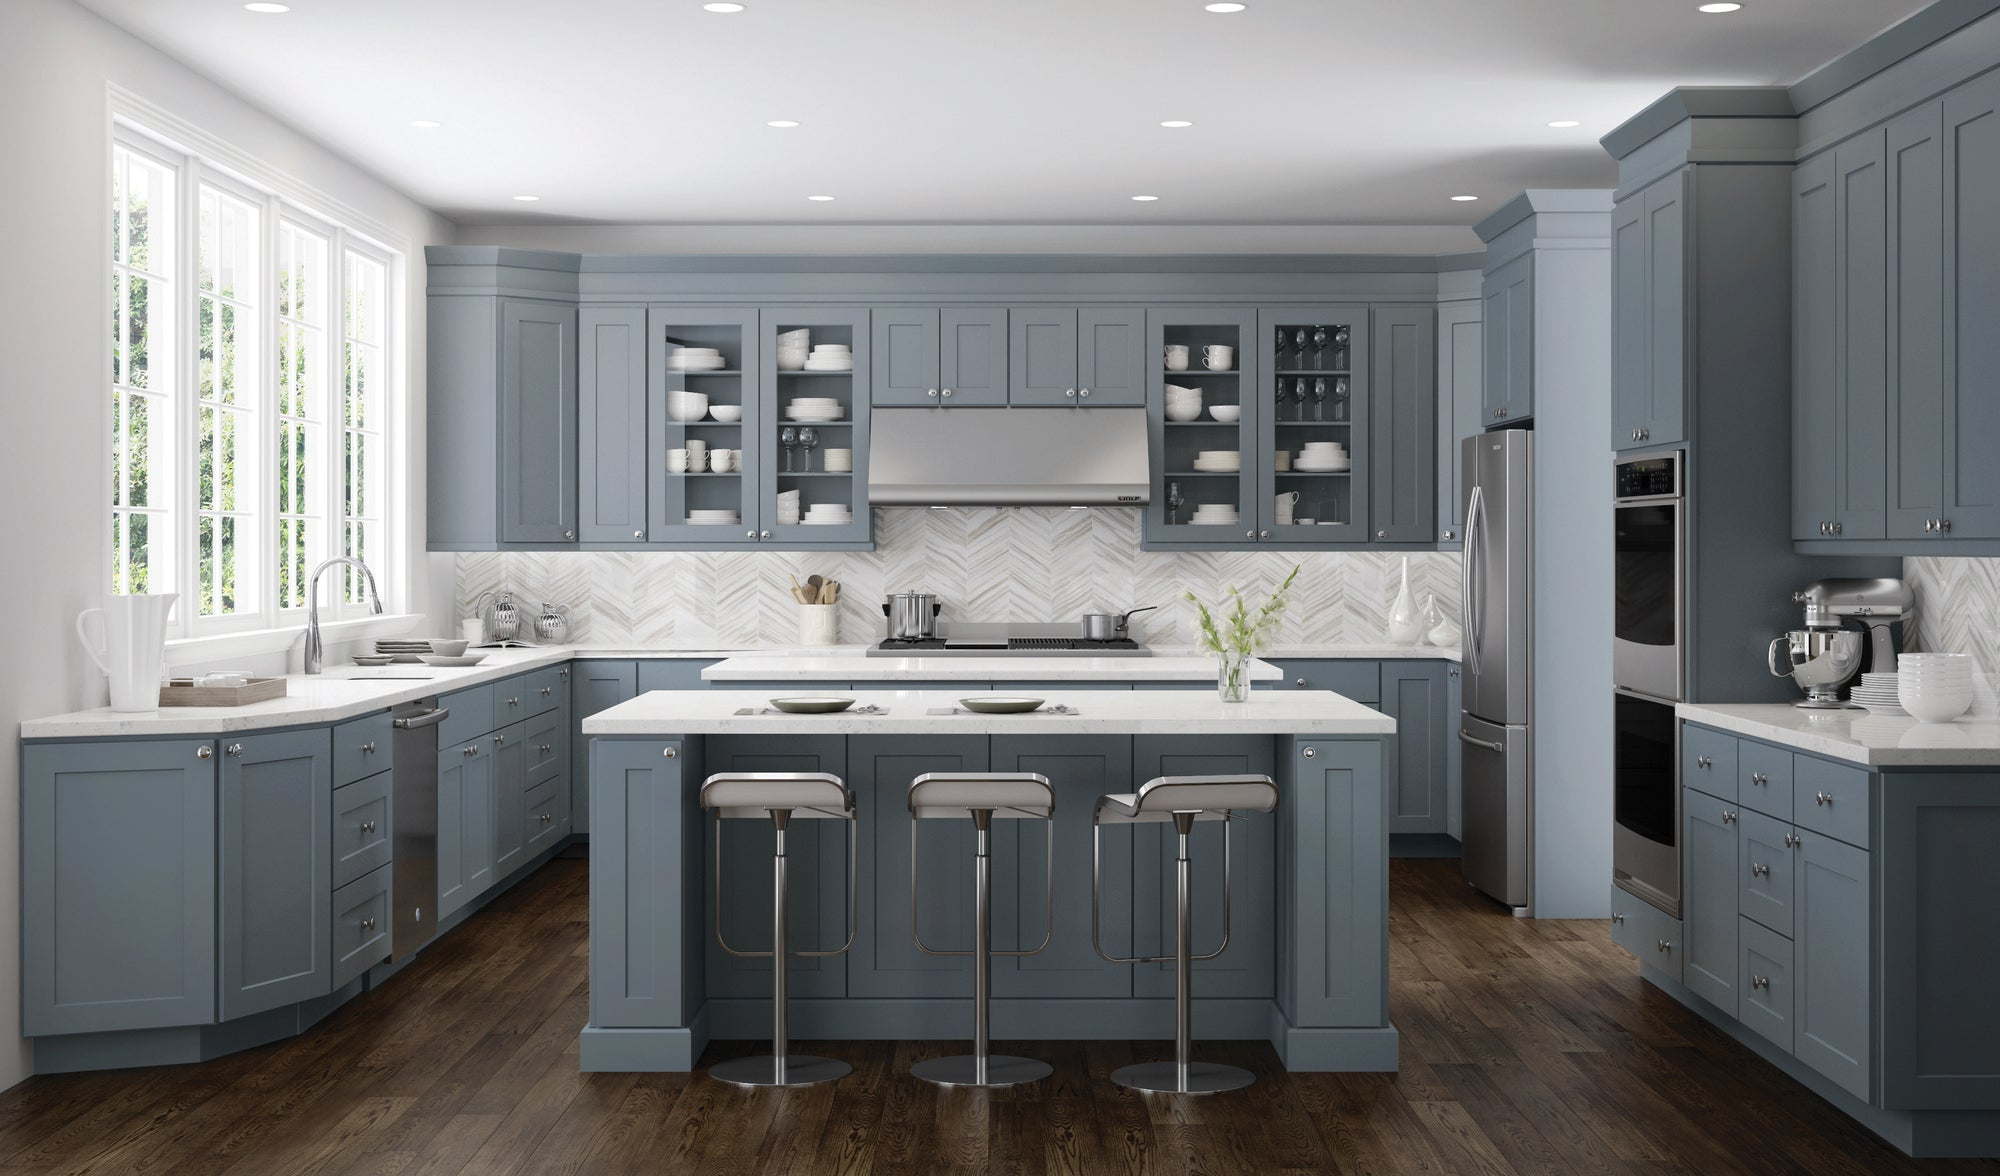 Quality Wholesale Kitchen Bath Cabinets Wholesale Cabinet Supply